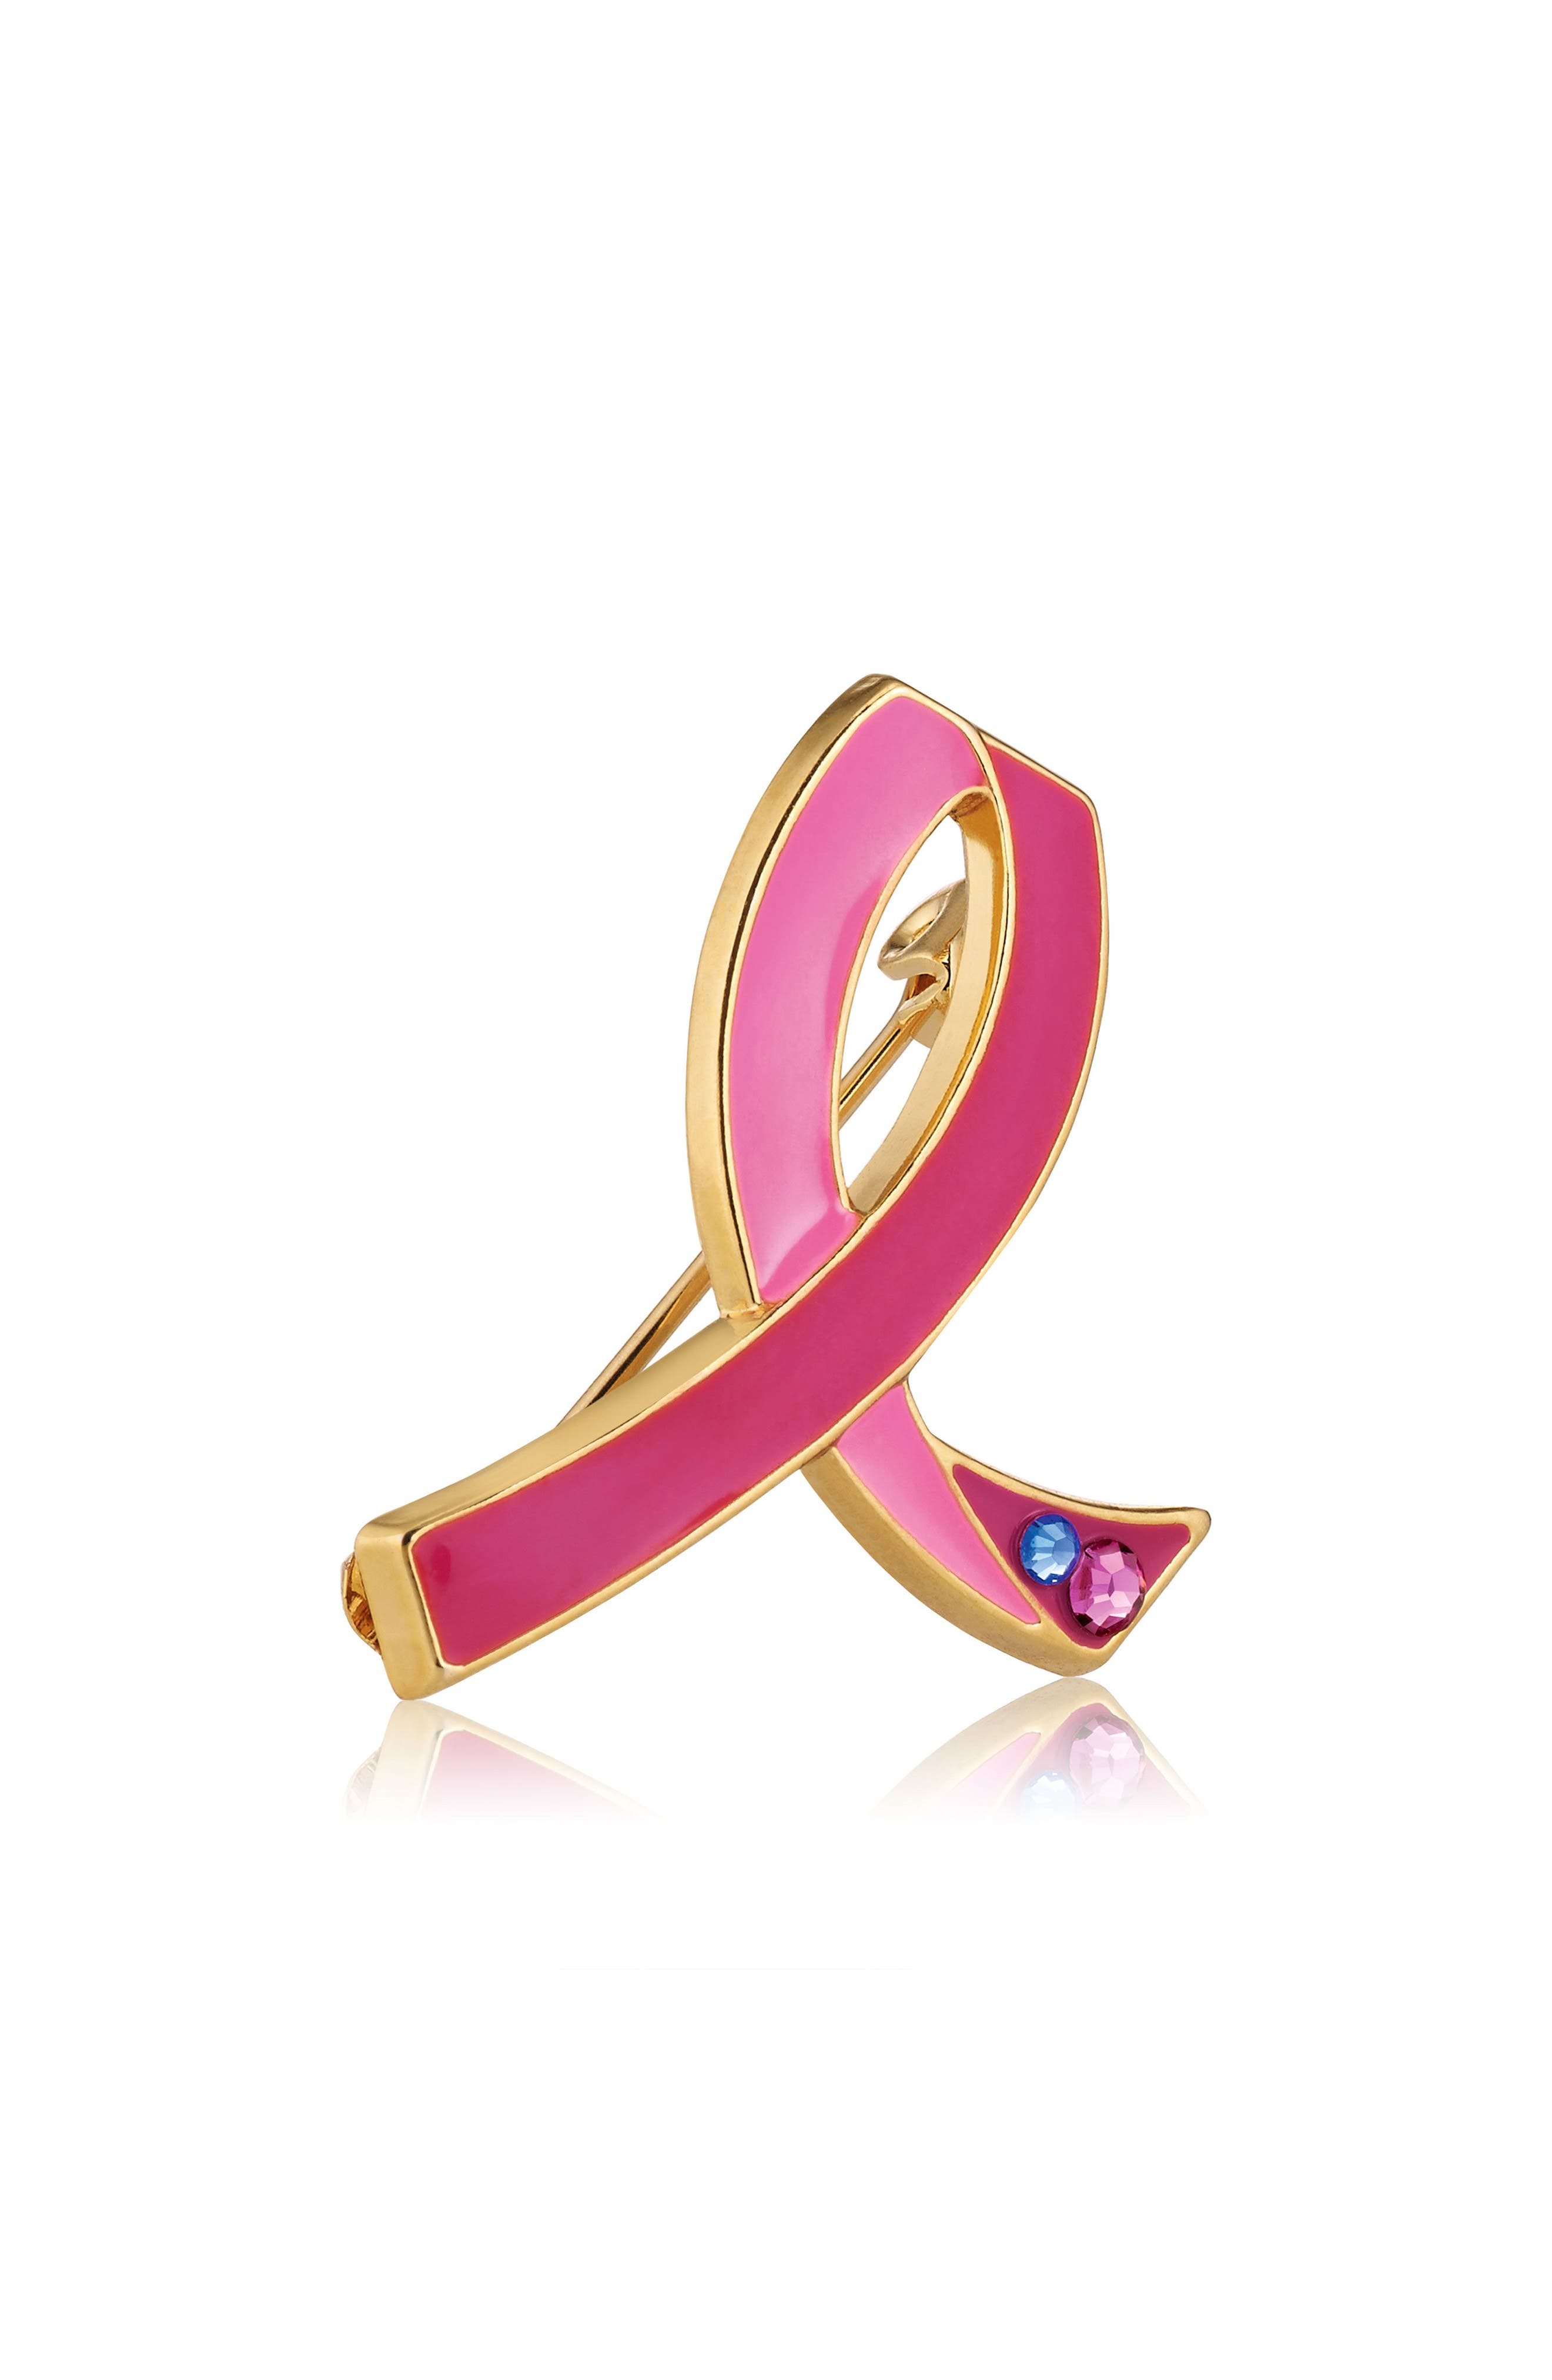 Estée Lauder 25th Anniversary Pink Ribbon Pin (Limited Edition)